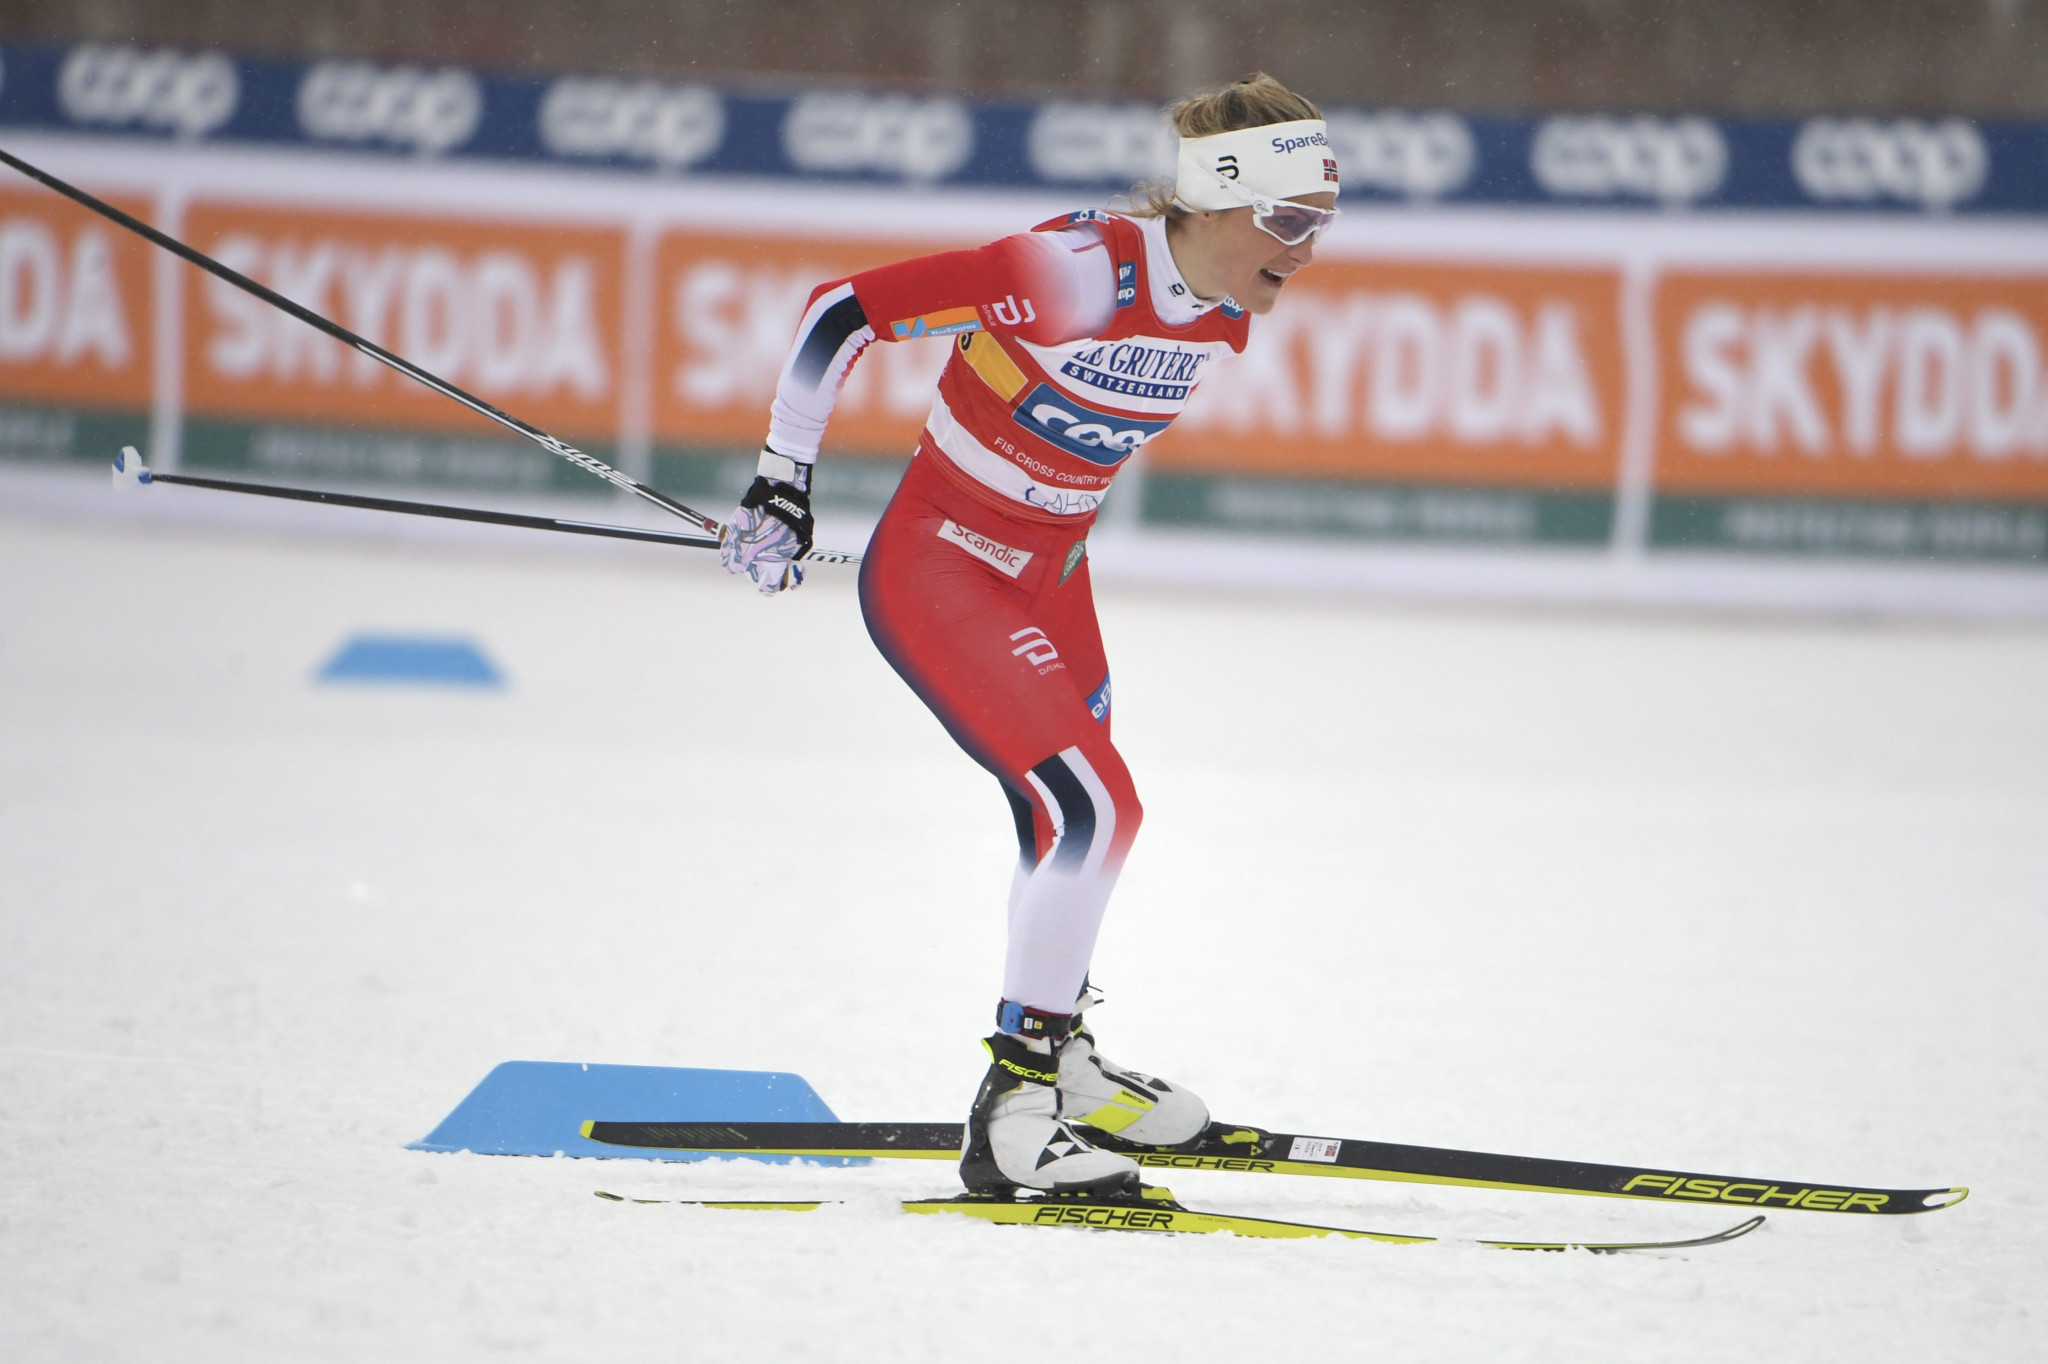 Johaug poised for overall title at FIS Cross-Country World Cup in Konnerud